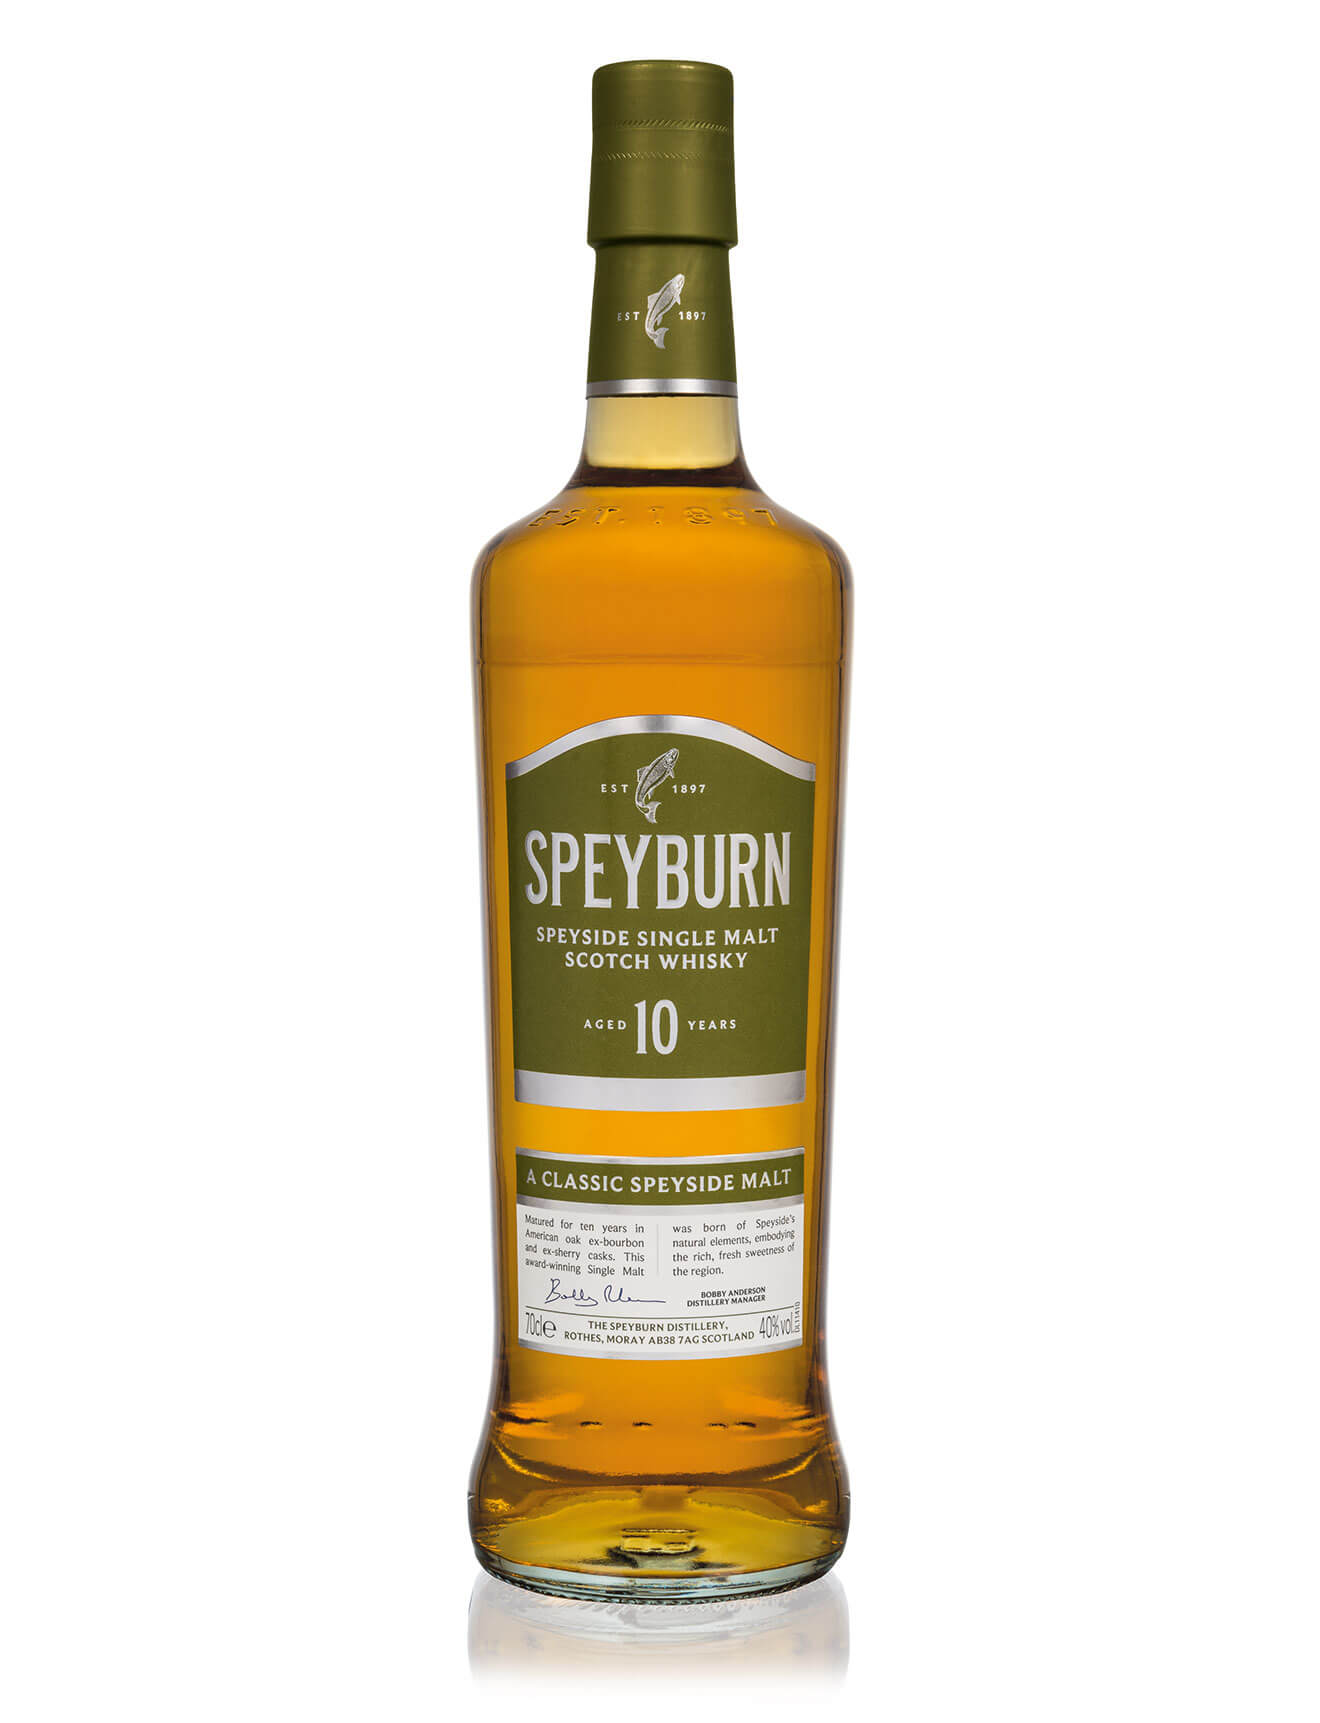 Speyburn 10 Year Old, bottle on white